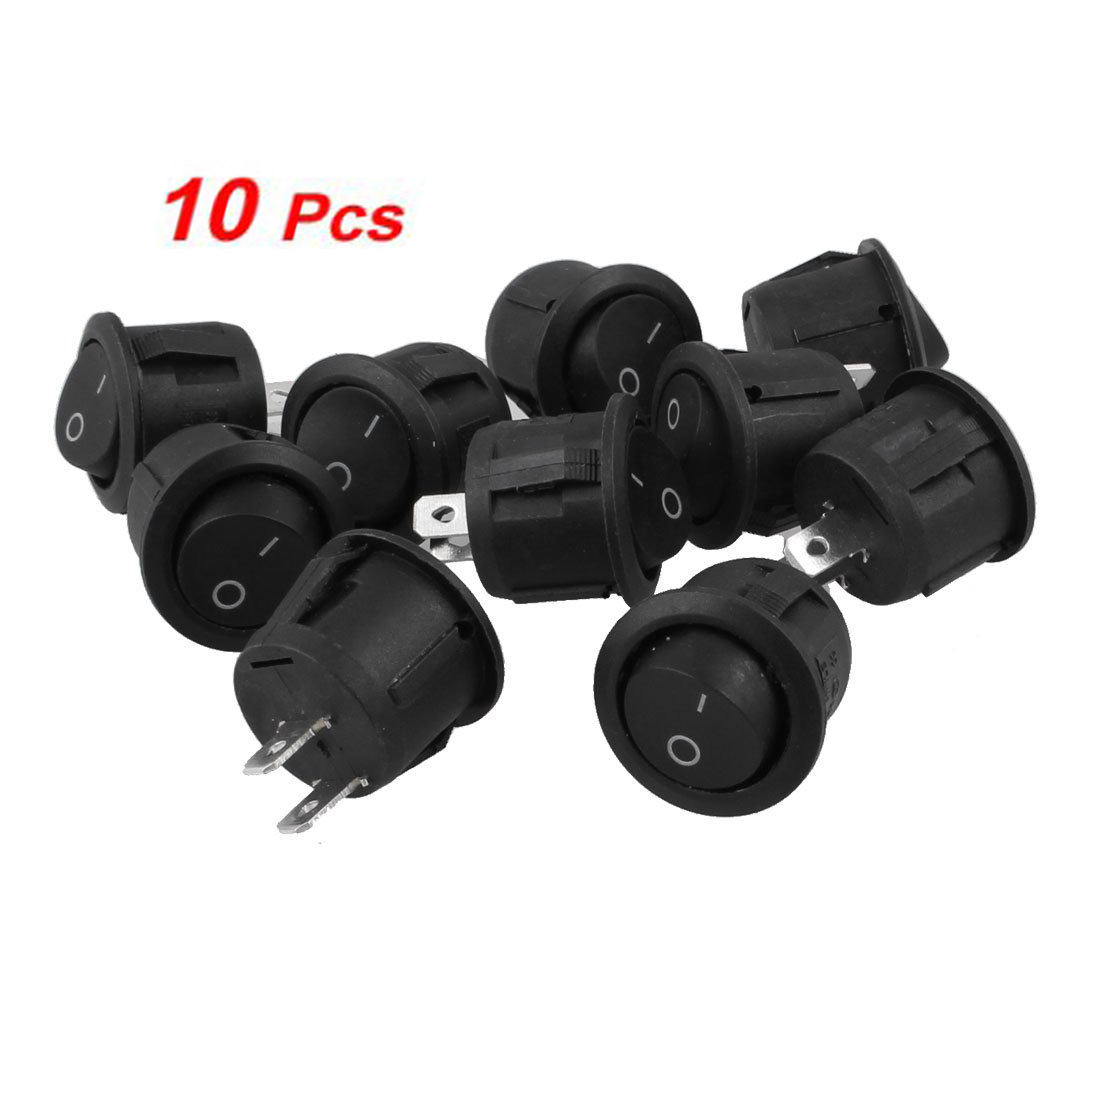 Promotion! 10Pcs AC 6A 10A 250V On Off Snap in SPST Round Boat Rocker Switch Black 5pcs black mini round 3 pin spdt on off rocker switch snap in s018y high quality